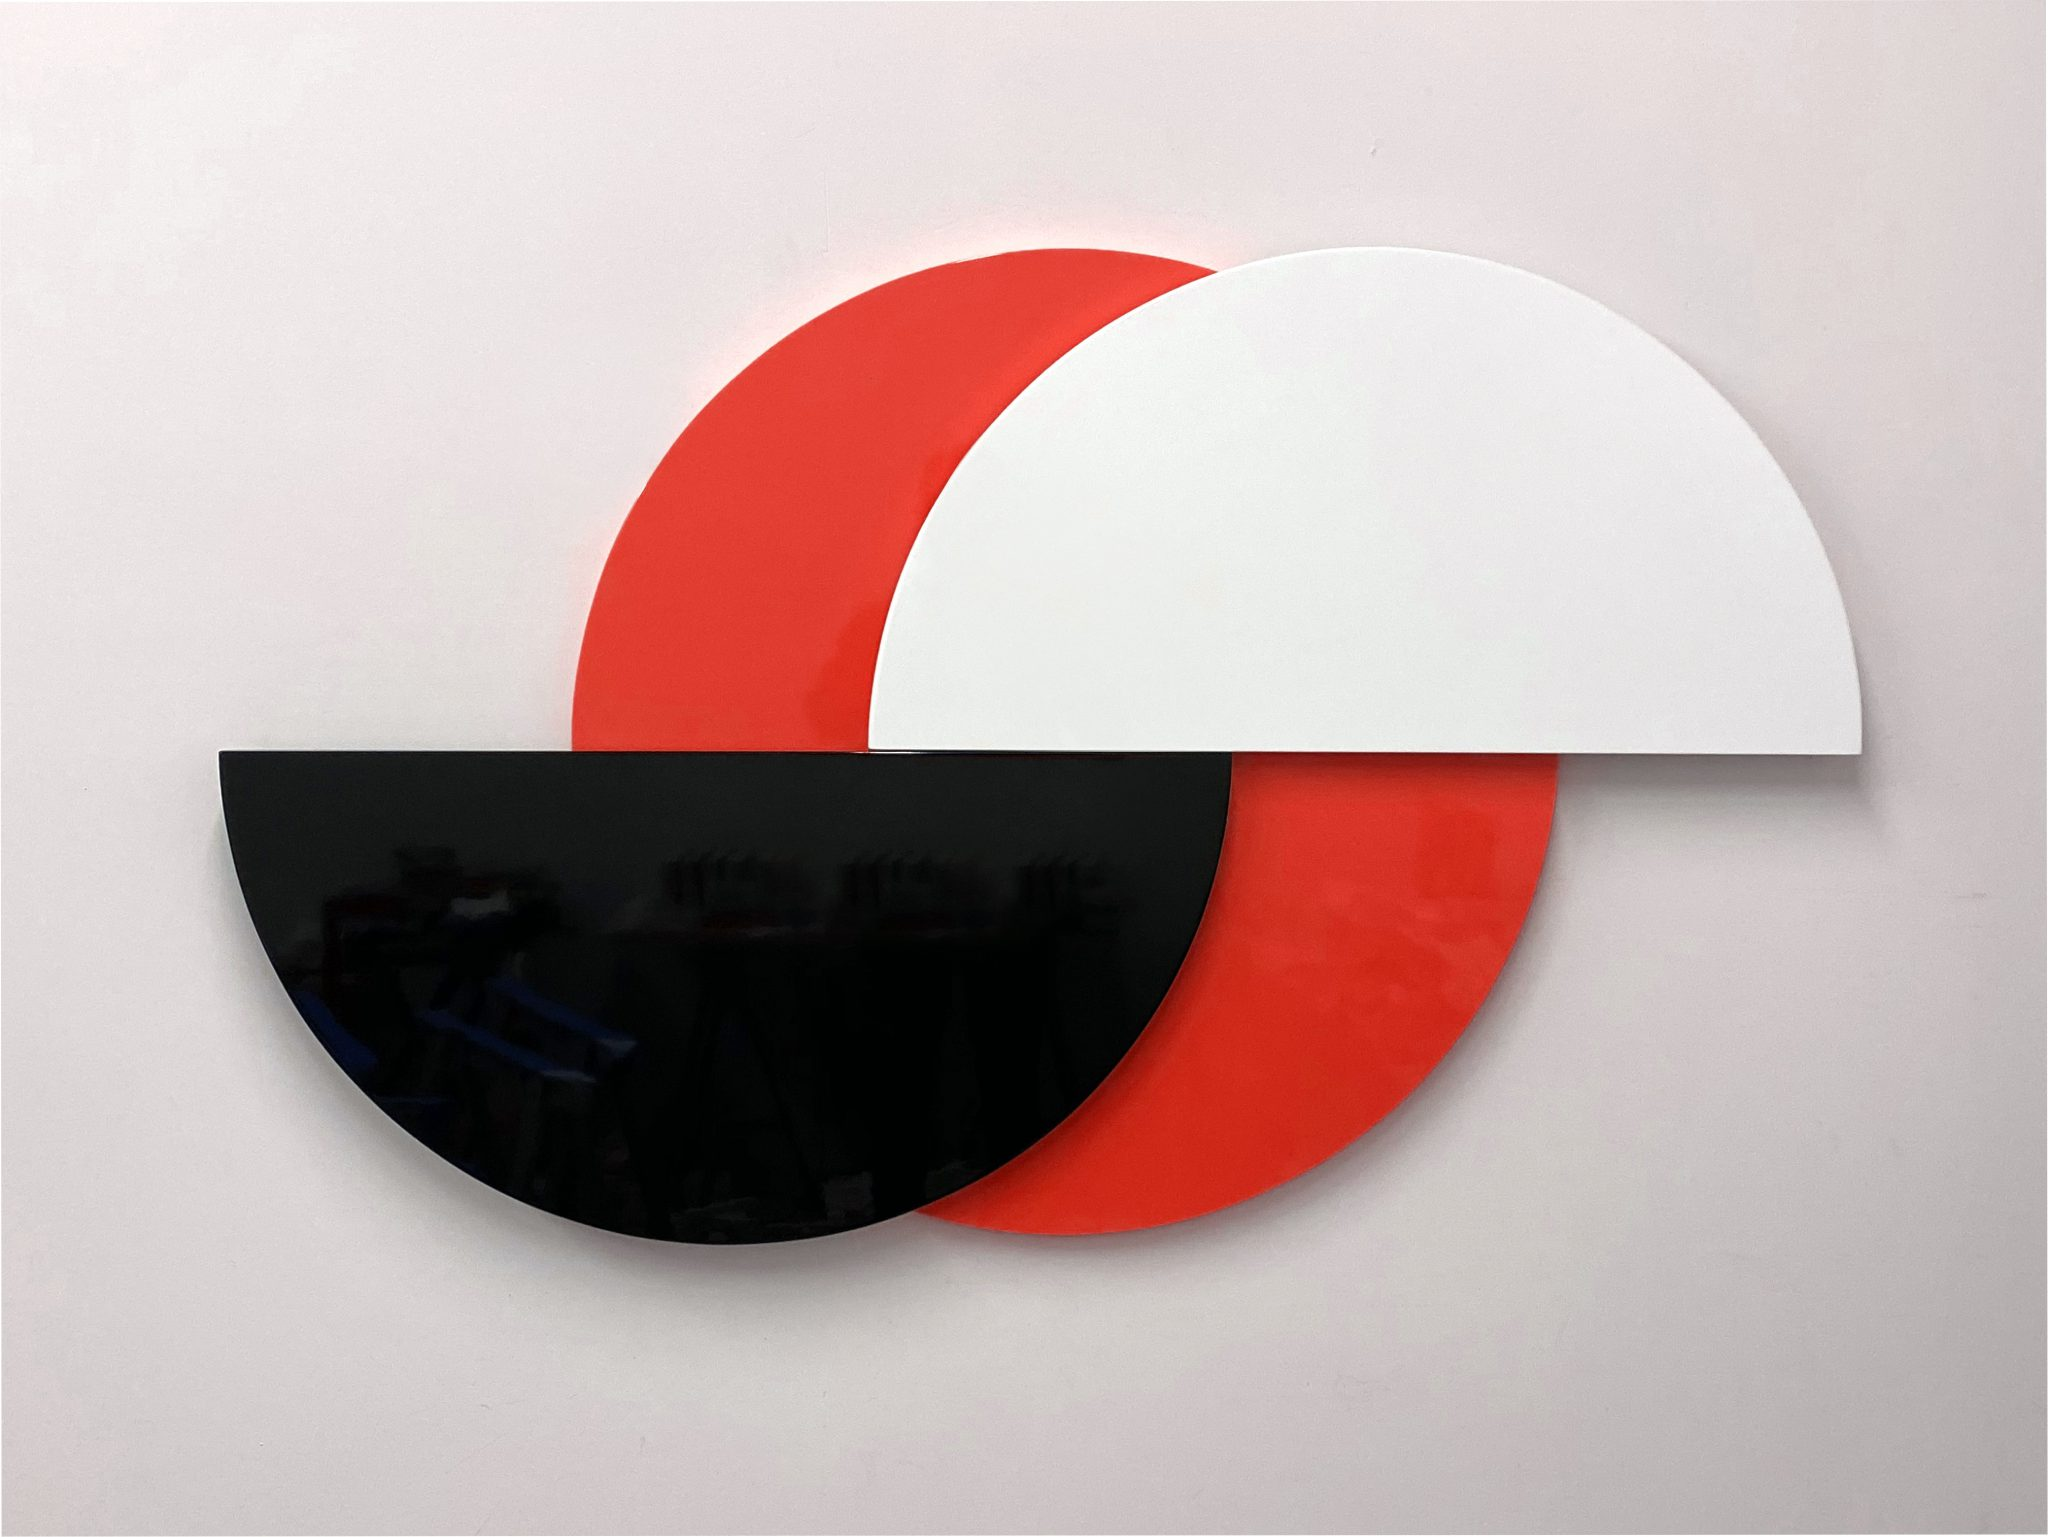 Half Moon (Red), 3-part painted MDF and hardware, 88 x 11.5 x 5.7 cm